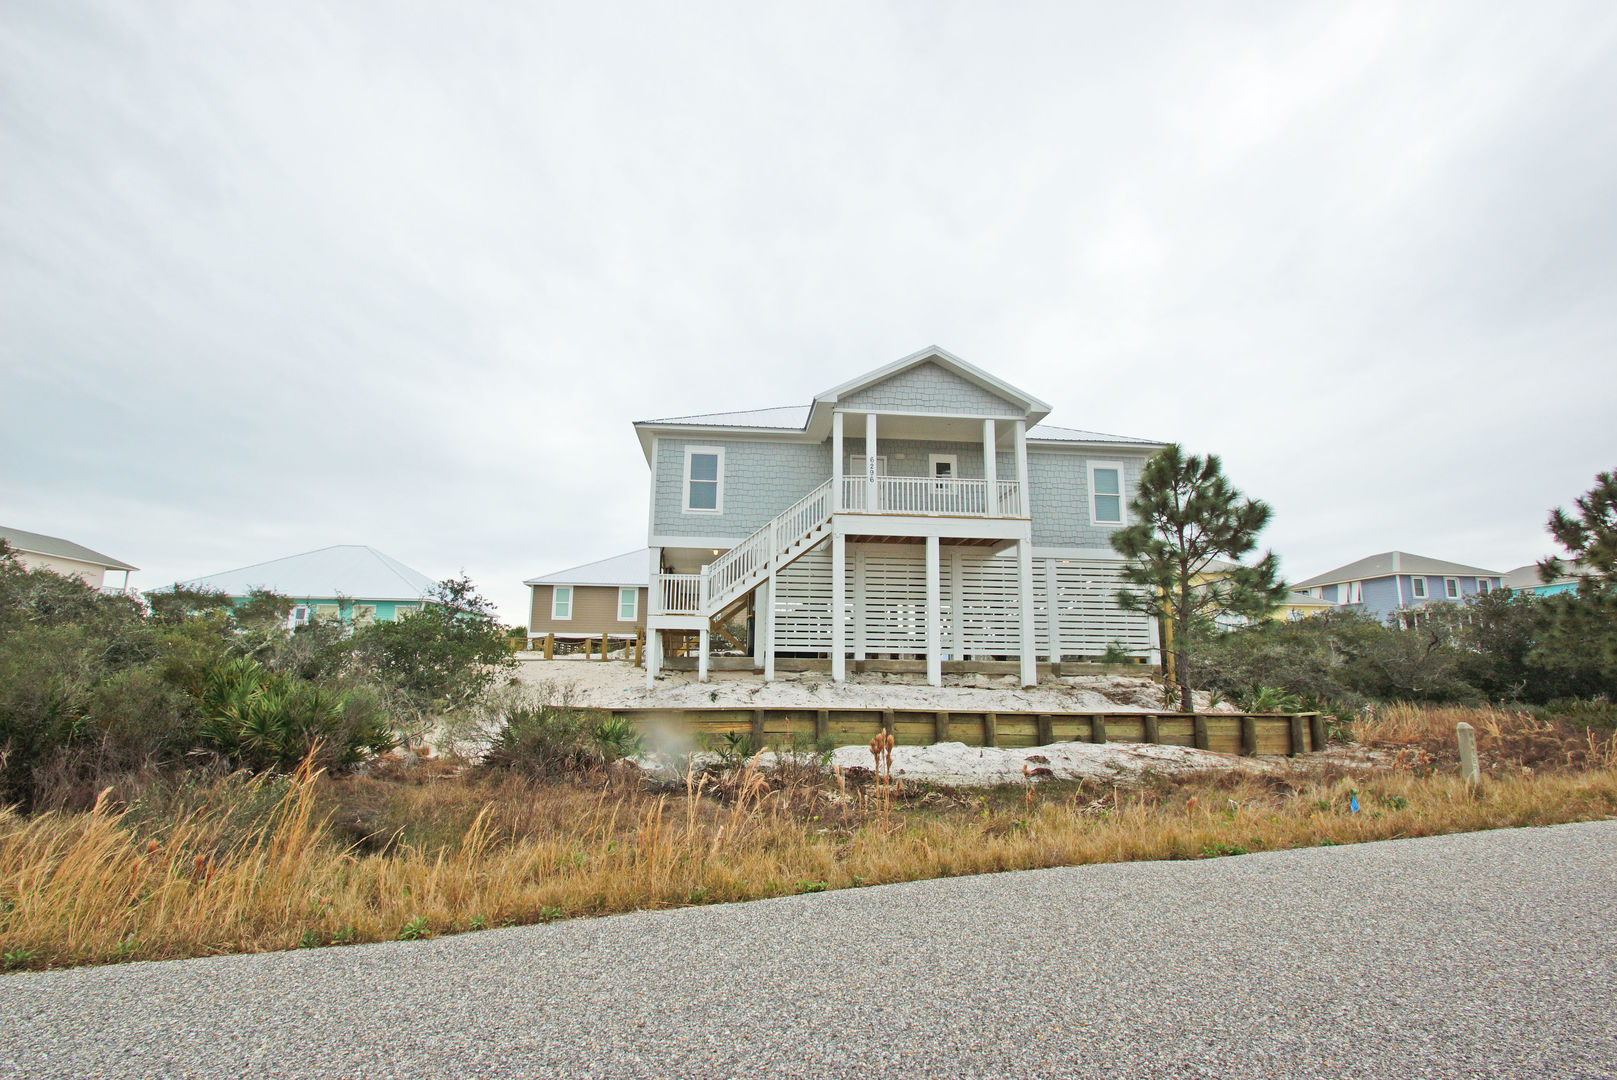 Street view of this Vacation Home For Rent In Gulf Shores, Alabama.